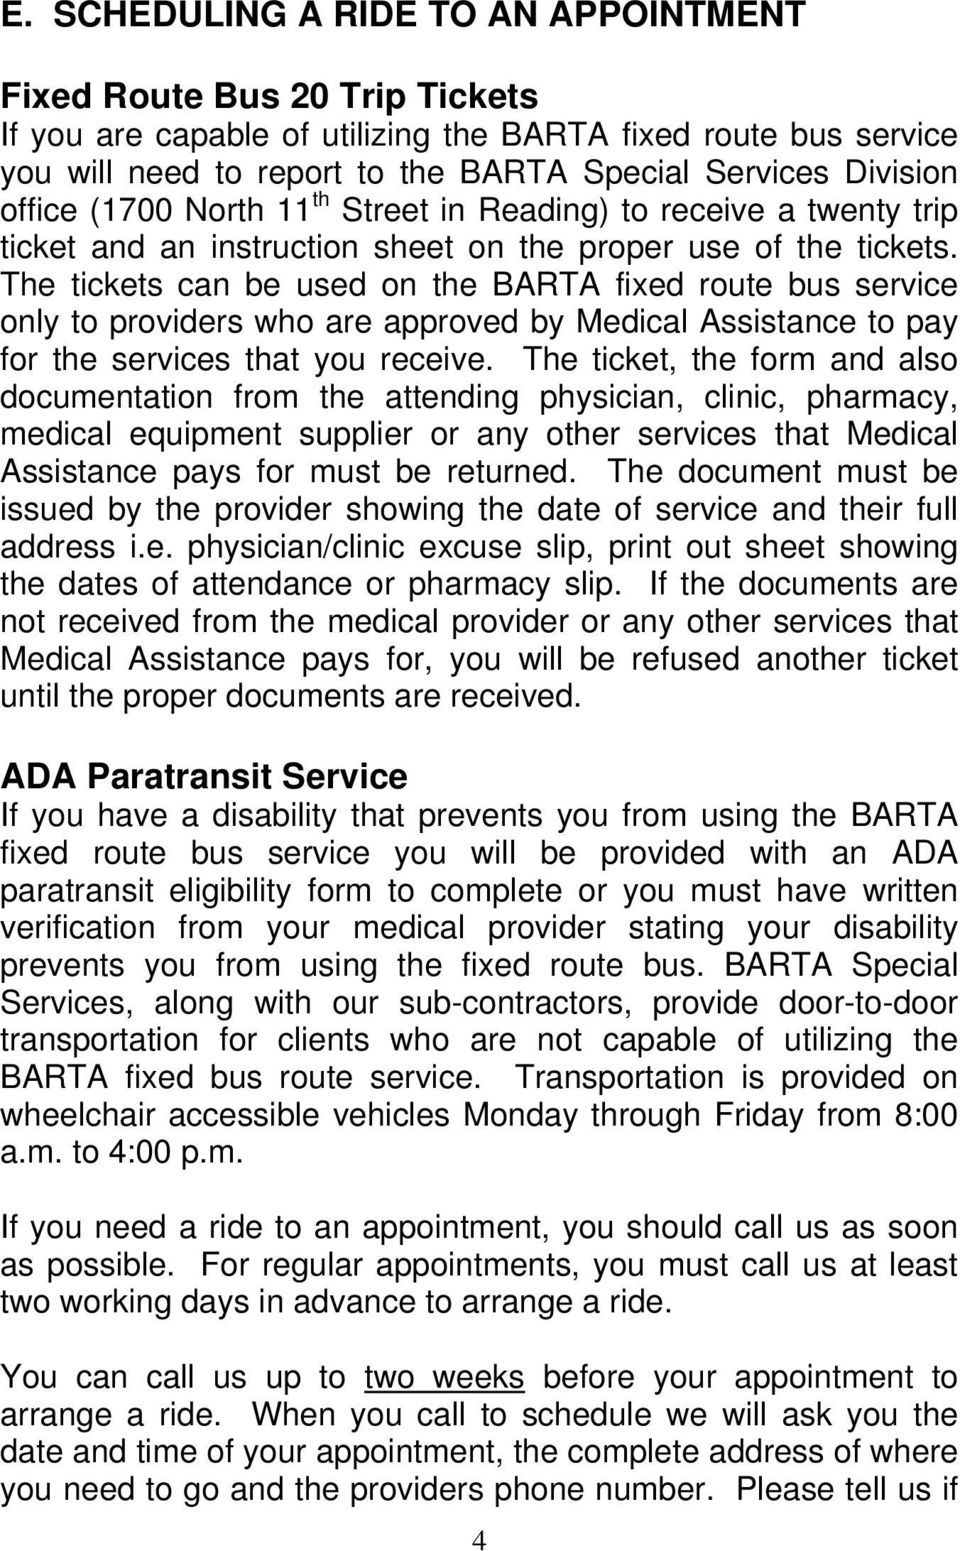 The tickets can be used on the BARTA fixed route bus service only to providers who are approved by Medical Assistance to pay for the services that you receive.